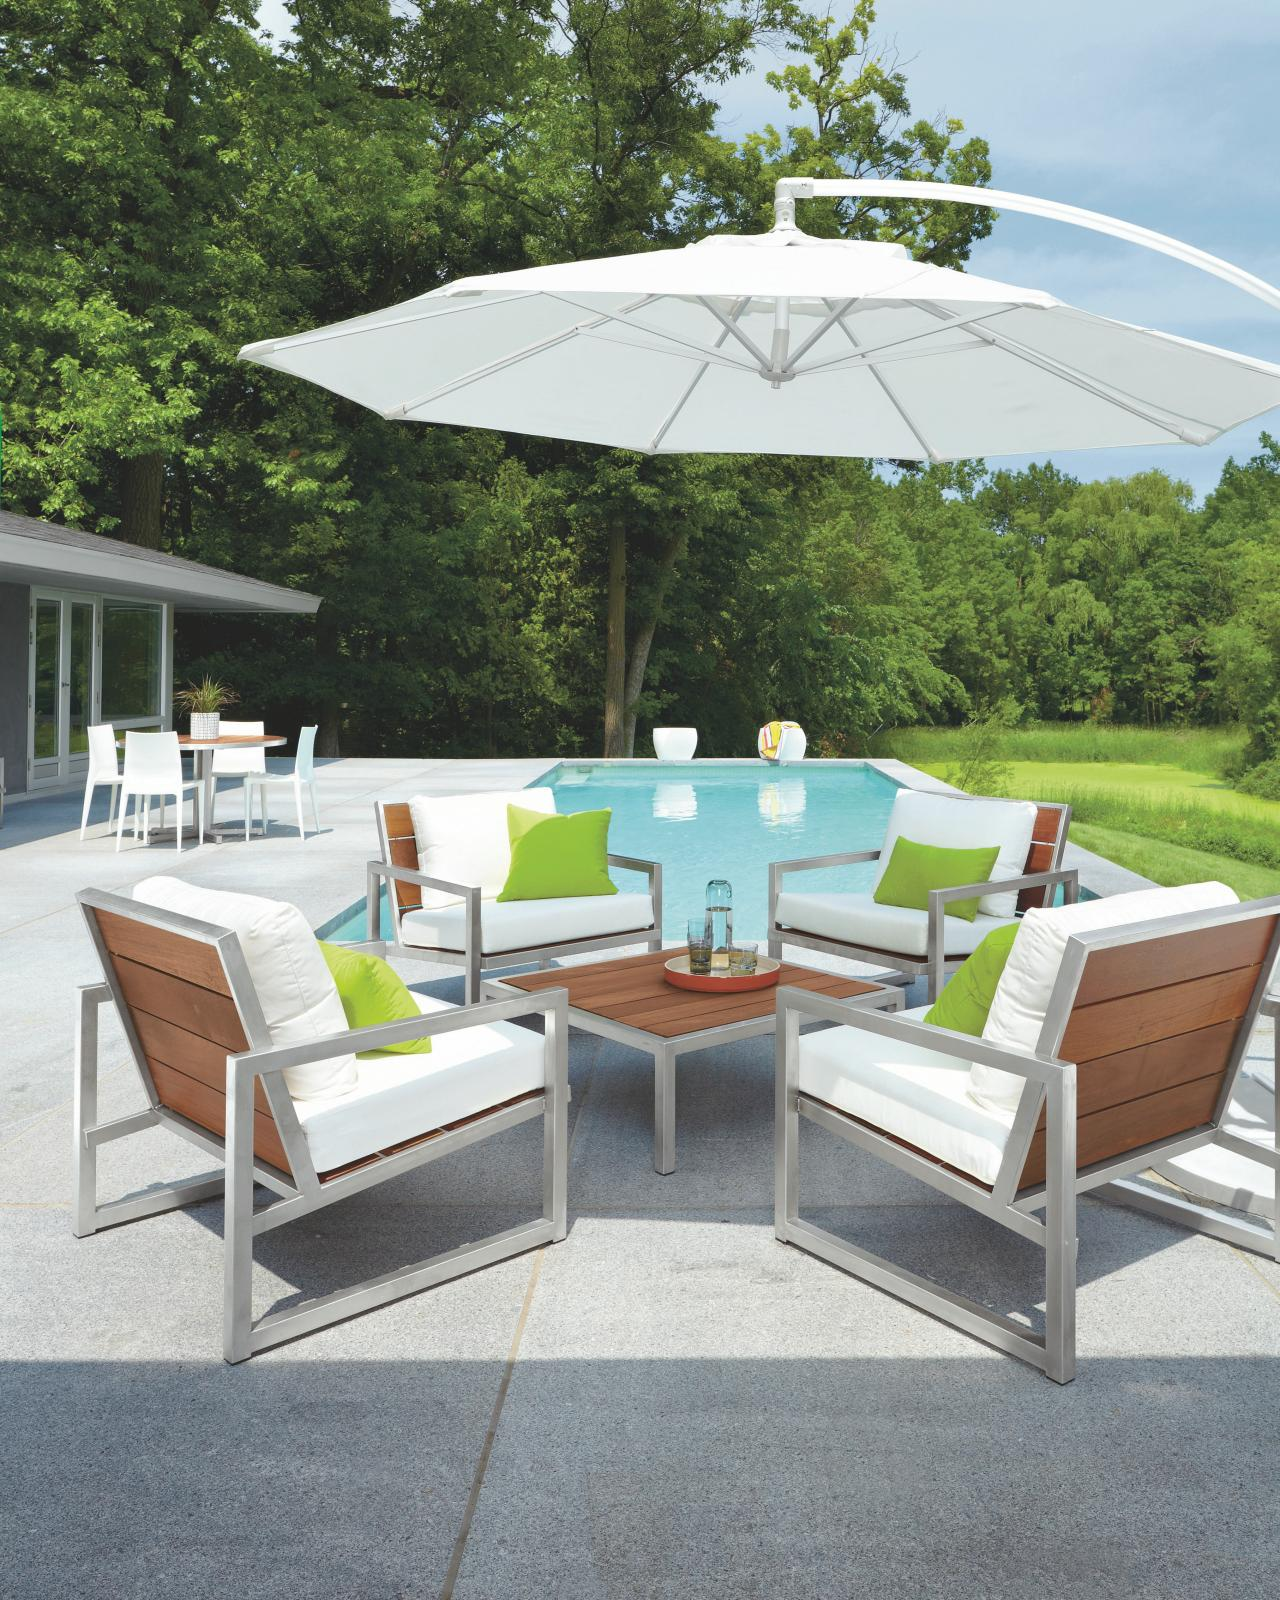 Easy Tips For Thomasville Outdoor Furniture Purchase ... on Living Spaces Patio Set id=92981